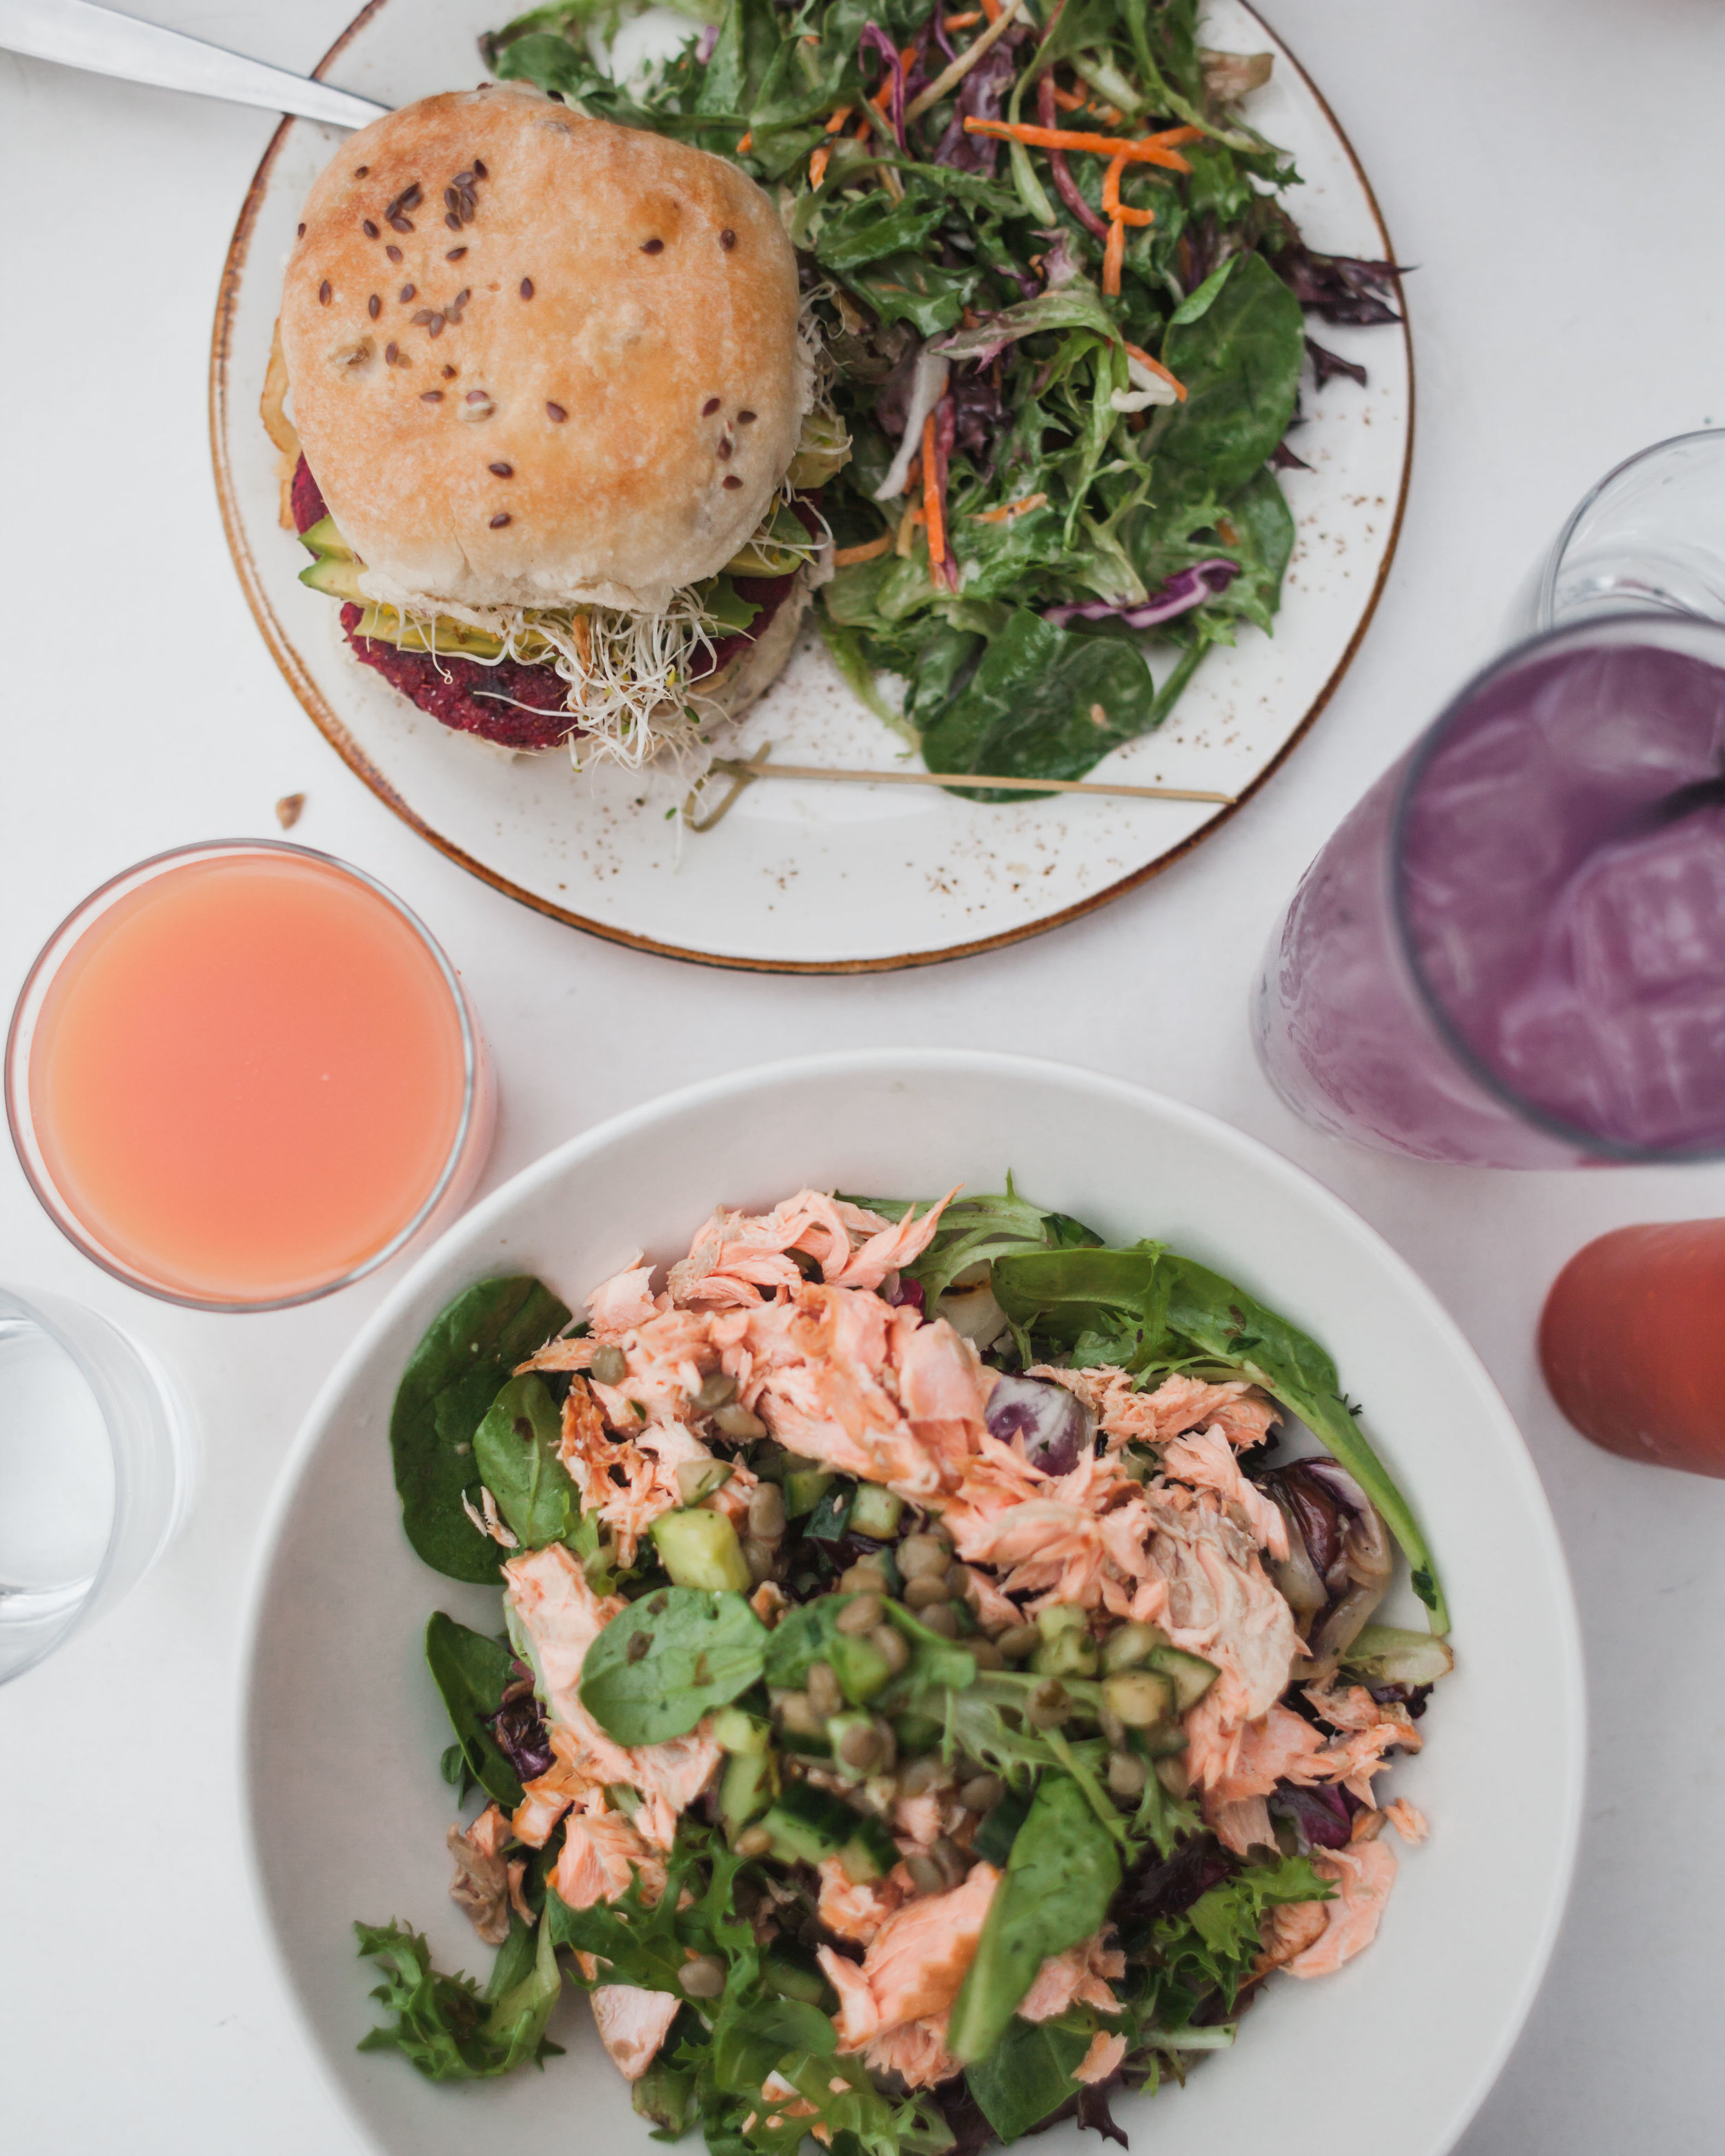 SMOKED TROUT - Smoked Trout, Cucumber, Grilled Radicchio, Lentils and Almonds, with Herb Vinaigrette    VEGGIE BURGER - Red Beet and Quinoa Patty with Roasted Celeriac, Smoky Tahini, Greens and Avocado on a Multigrain Bun